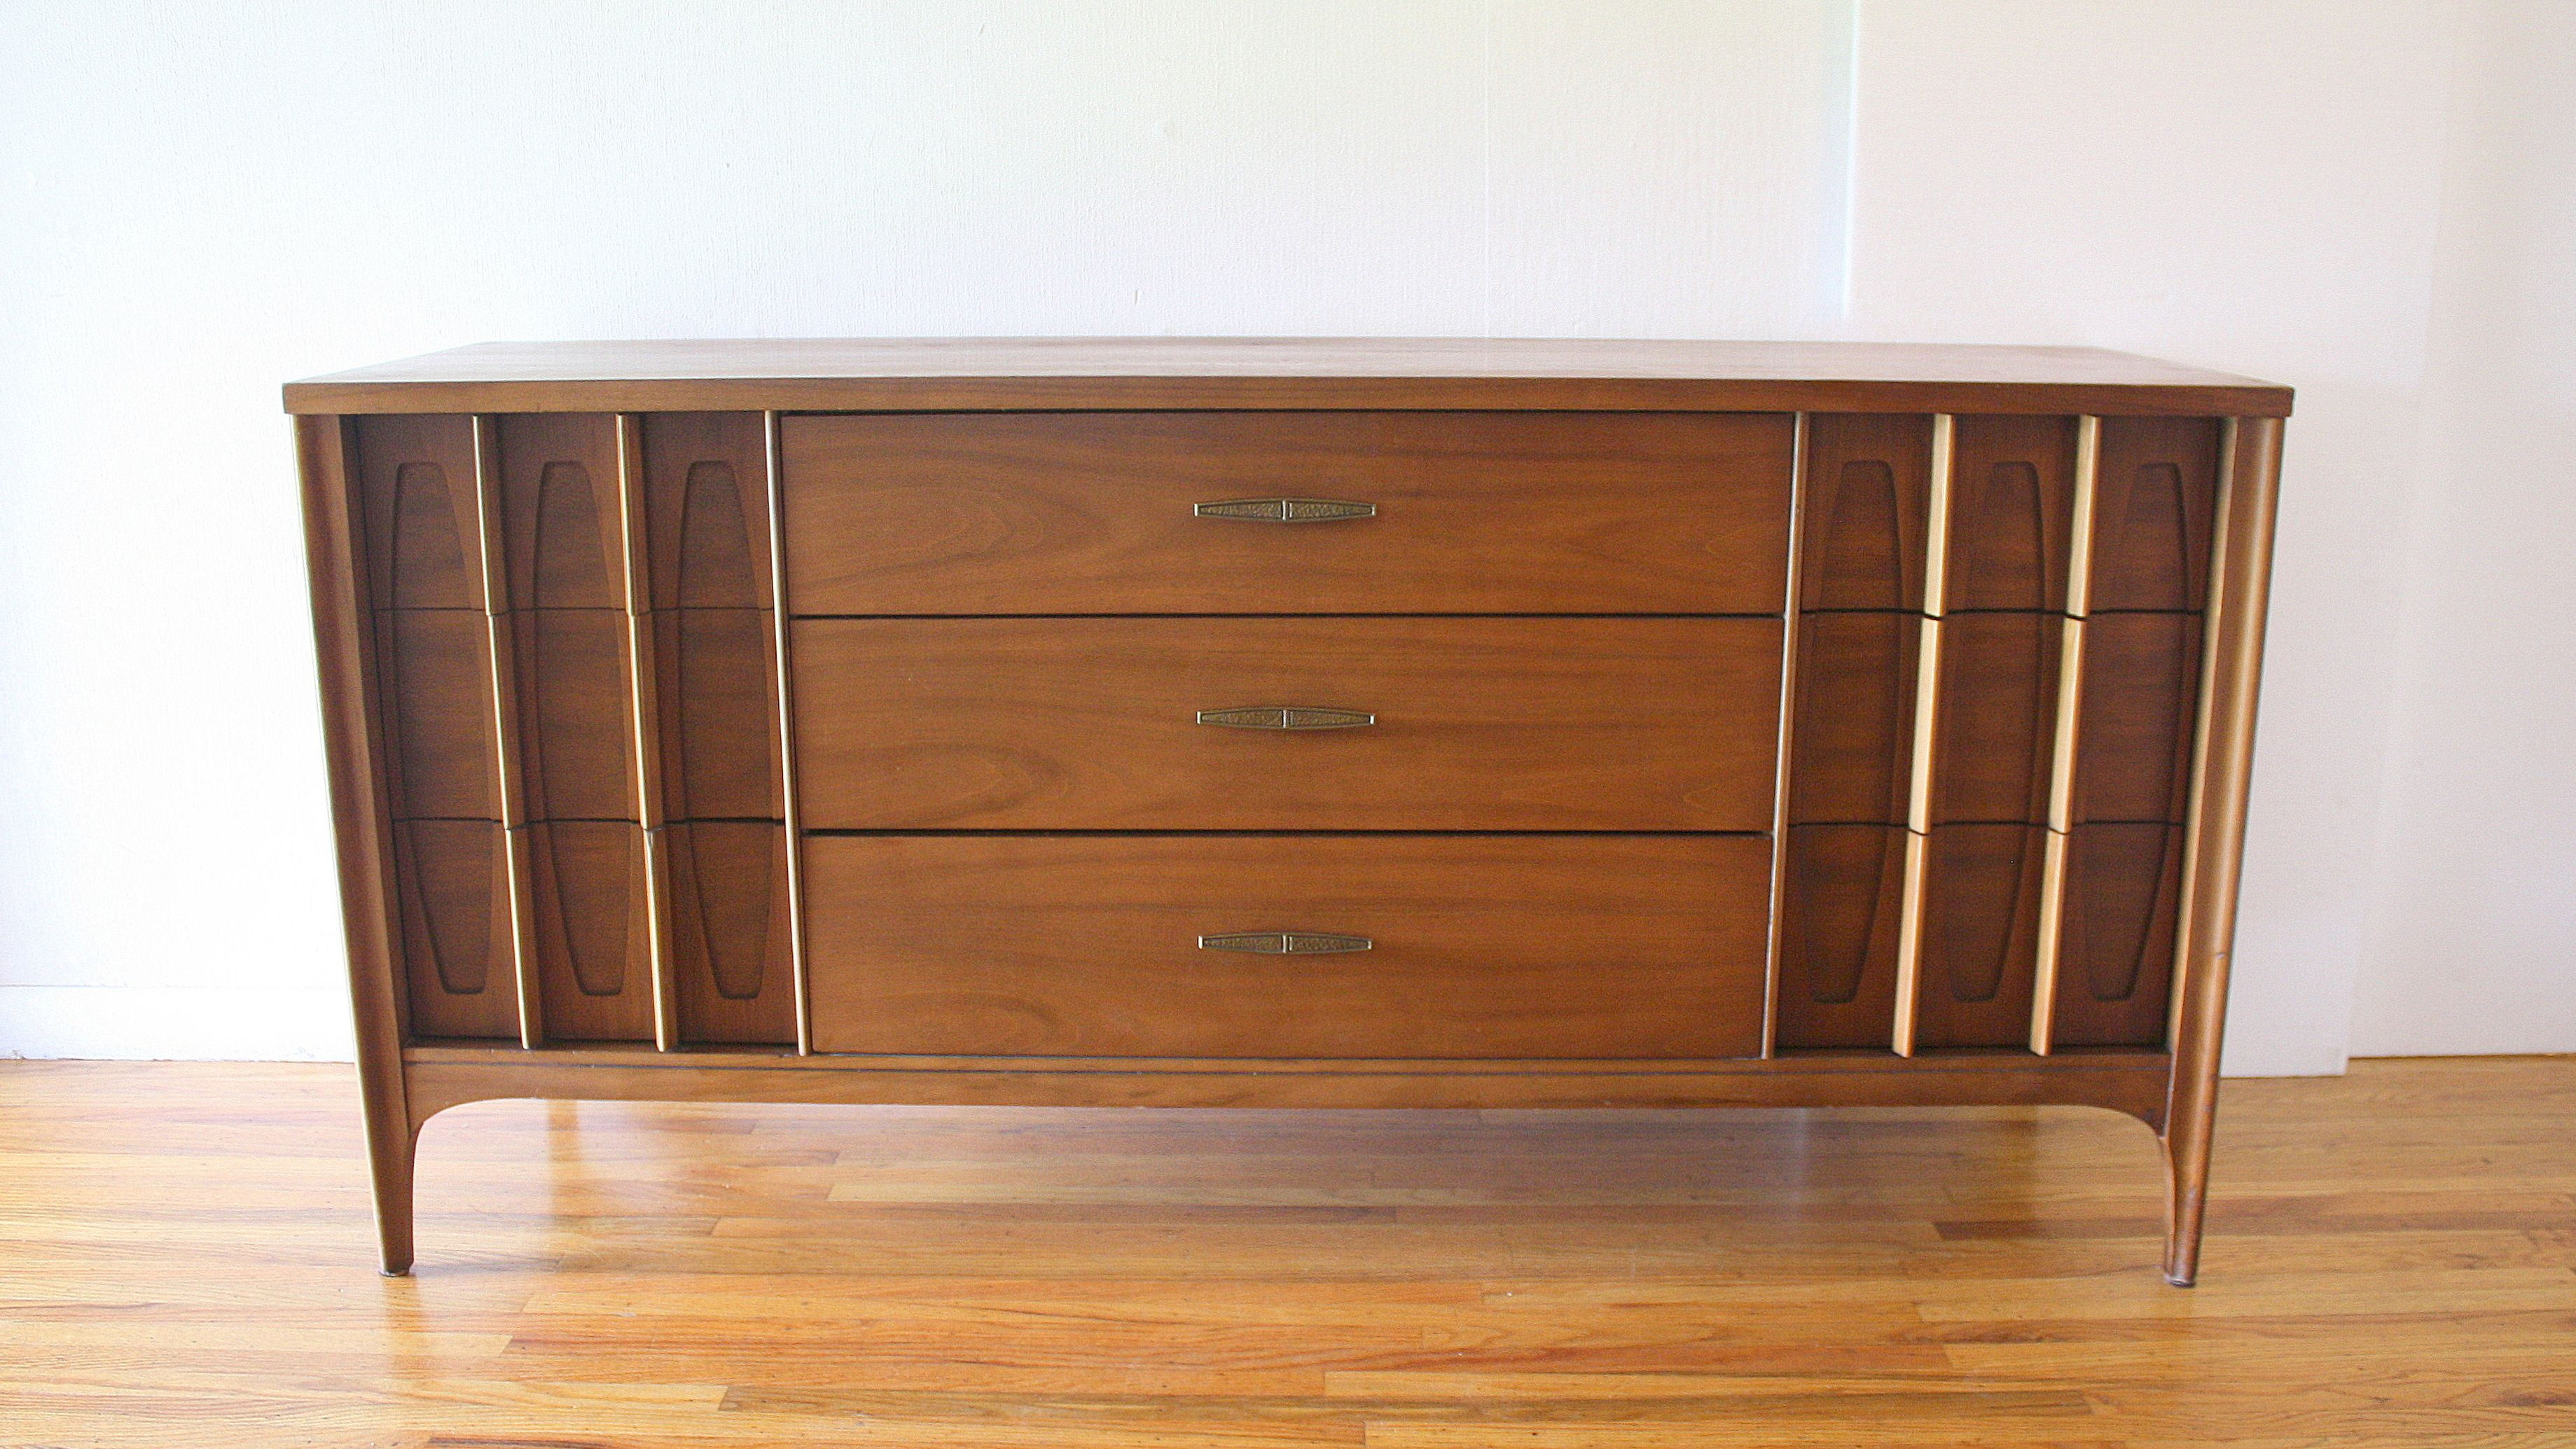 Mid Century Modern Low Dresser Credenza With A Sculpted Drawer Design Angled Br Pulls And Tapered Legs